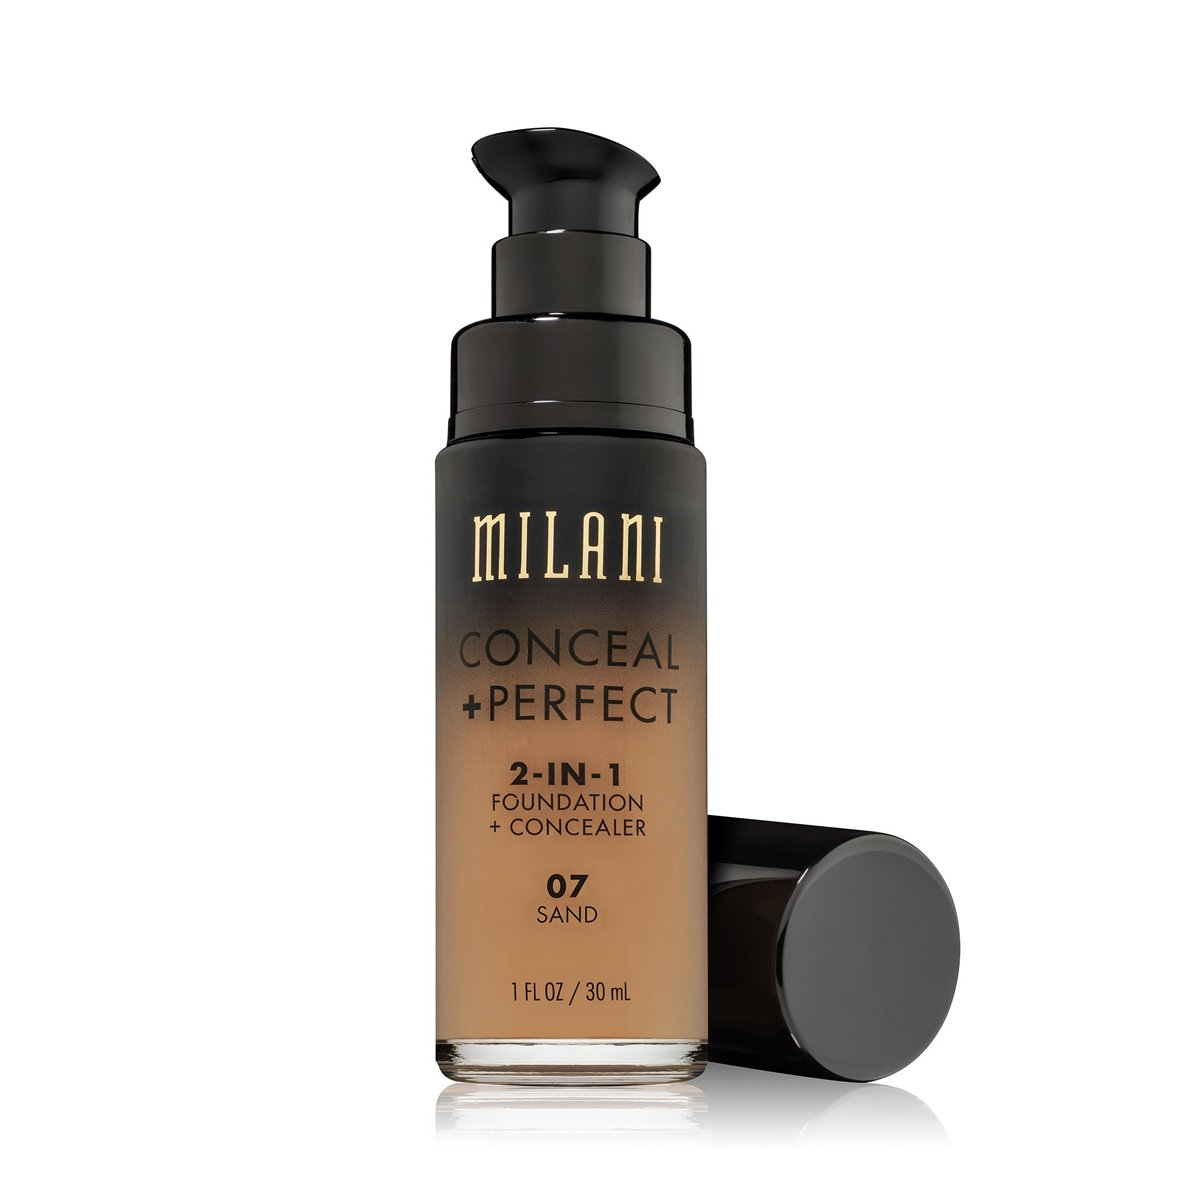 (3 Pack) MILANI Conceal + Perfect 2-In-1 Foundation + Concealer - Sand